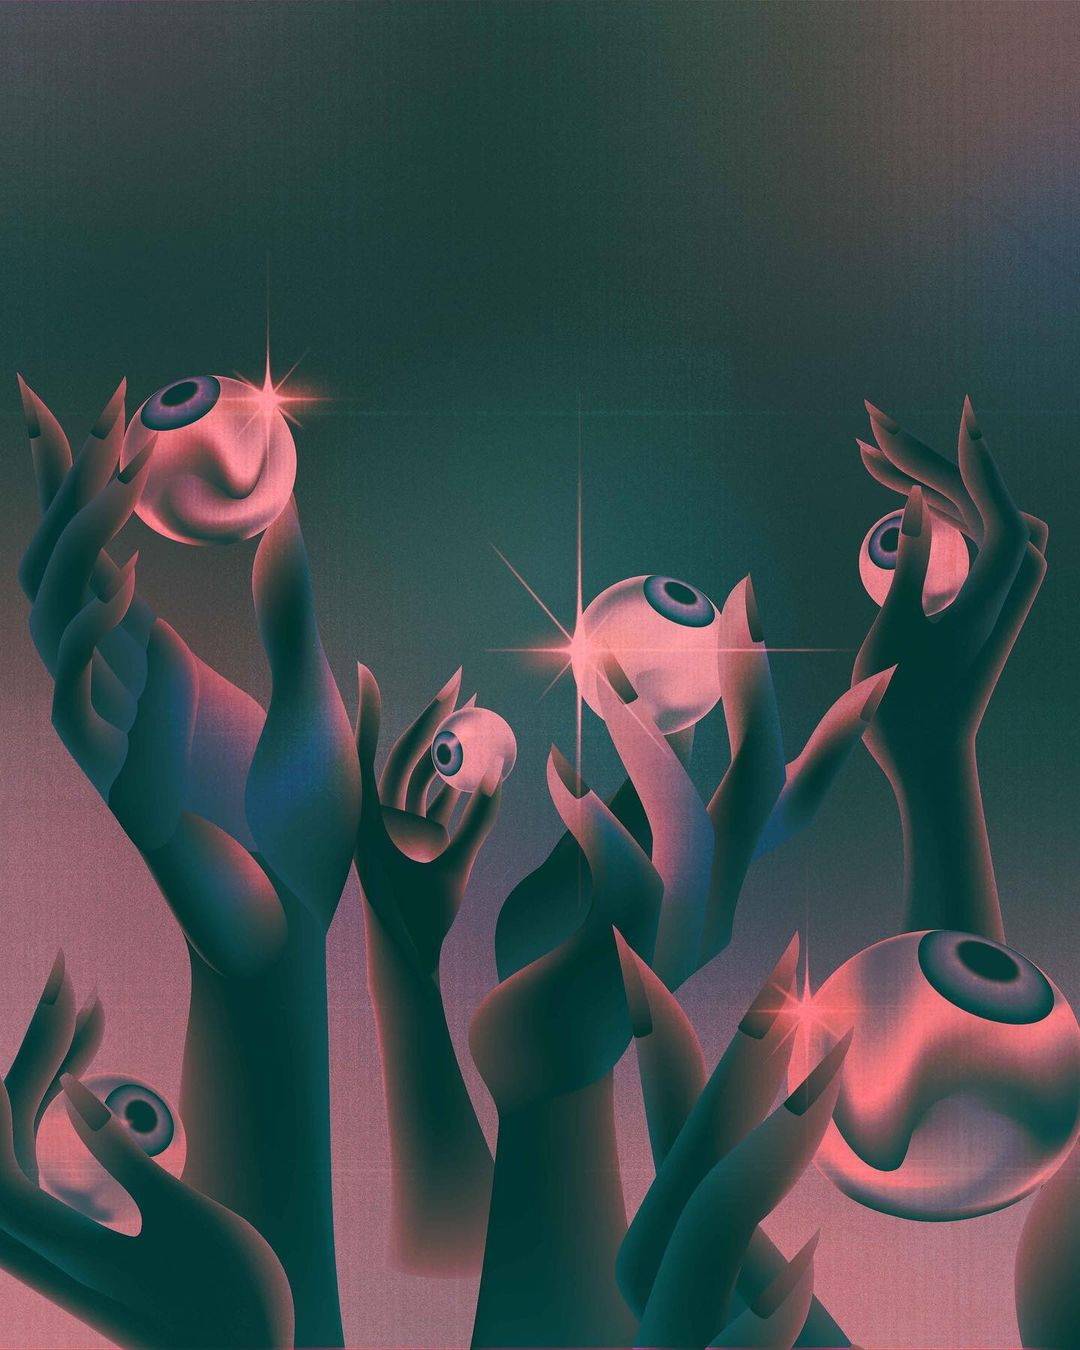 Paulina Almira's Digital Explorations of the Surreal & Ethereal 3